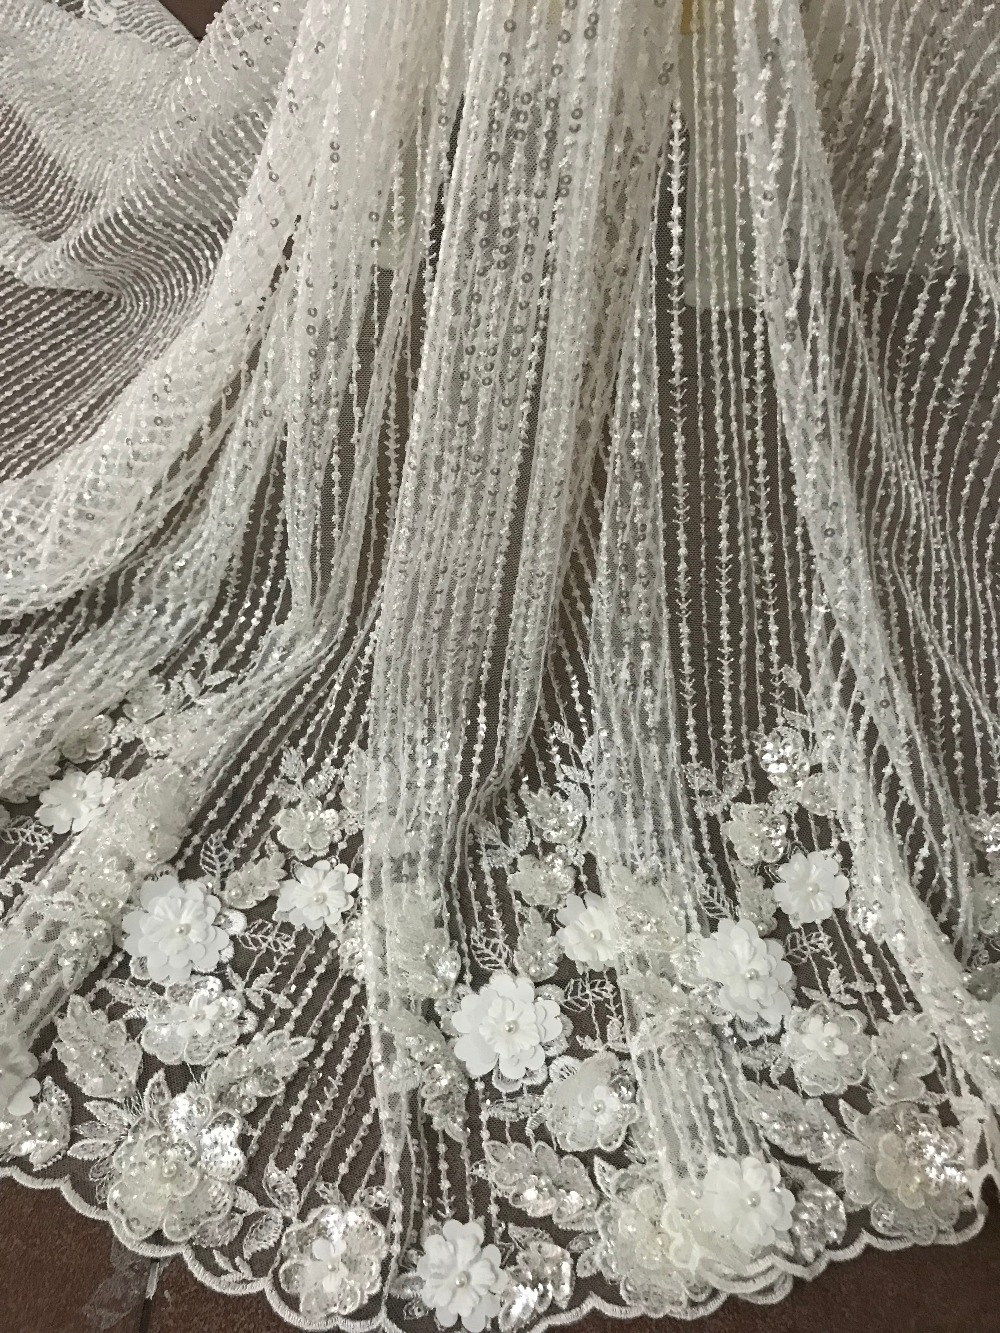 embroidery tull net lace fabric SYJ 6145 luxury romantic 3d flower lace for evening dress/fashion show